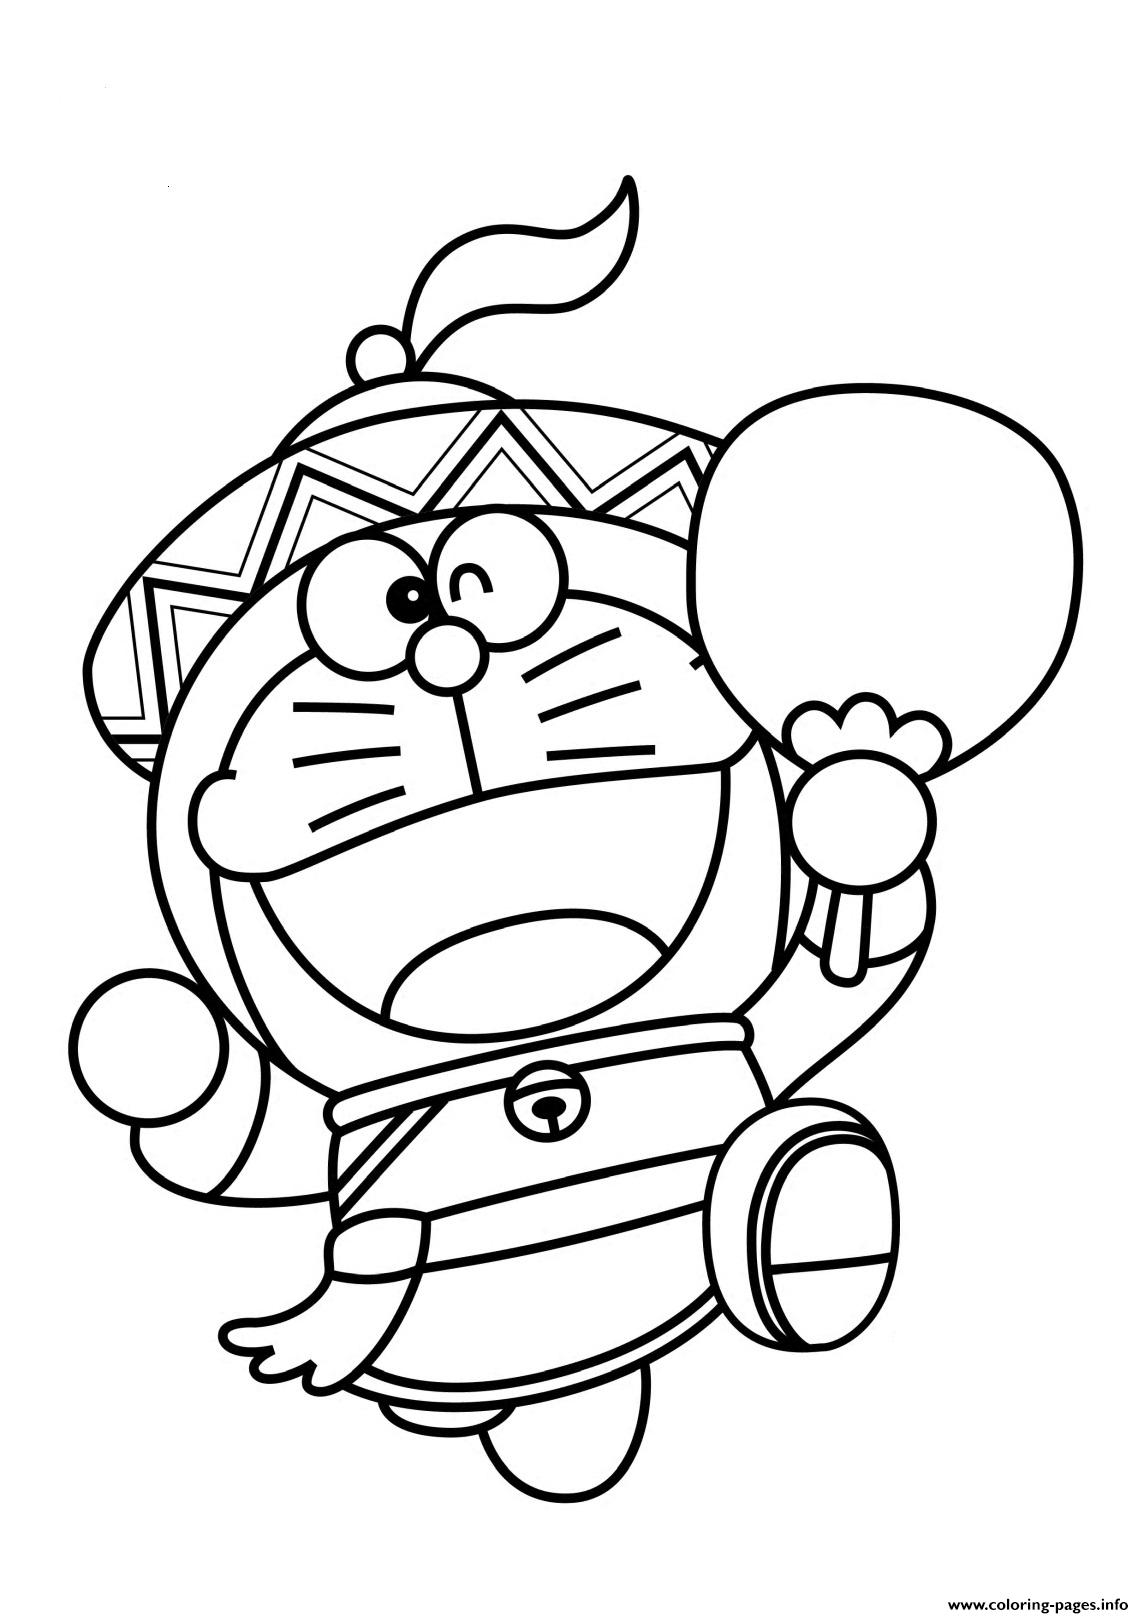 Doraemon As Chinese 6823 Coloring Pages Printable